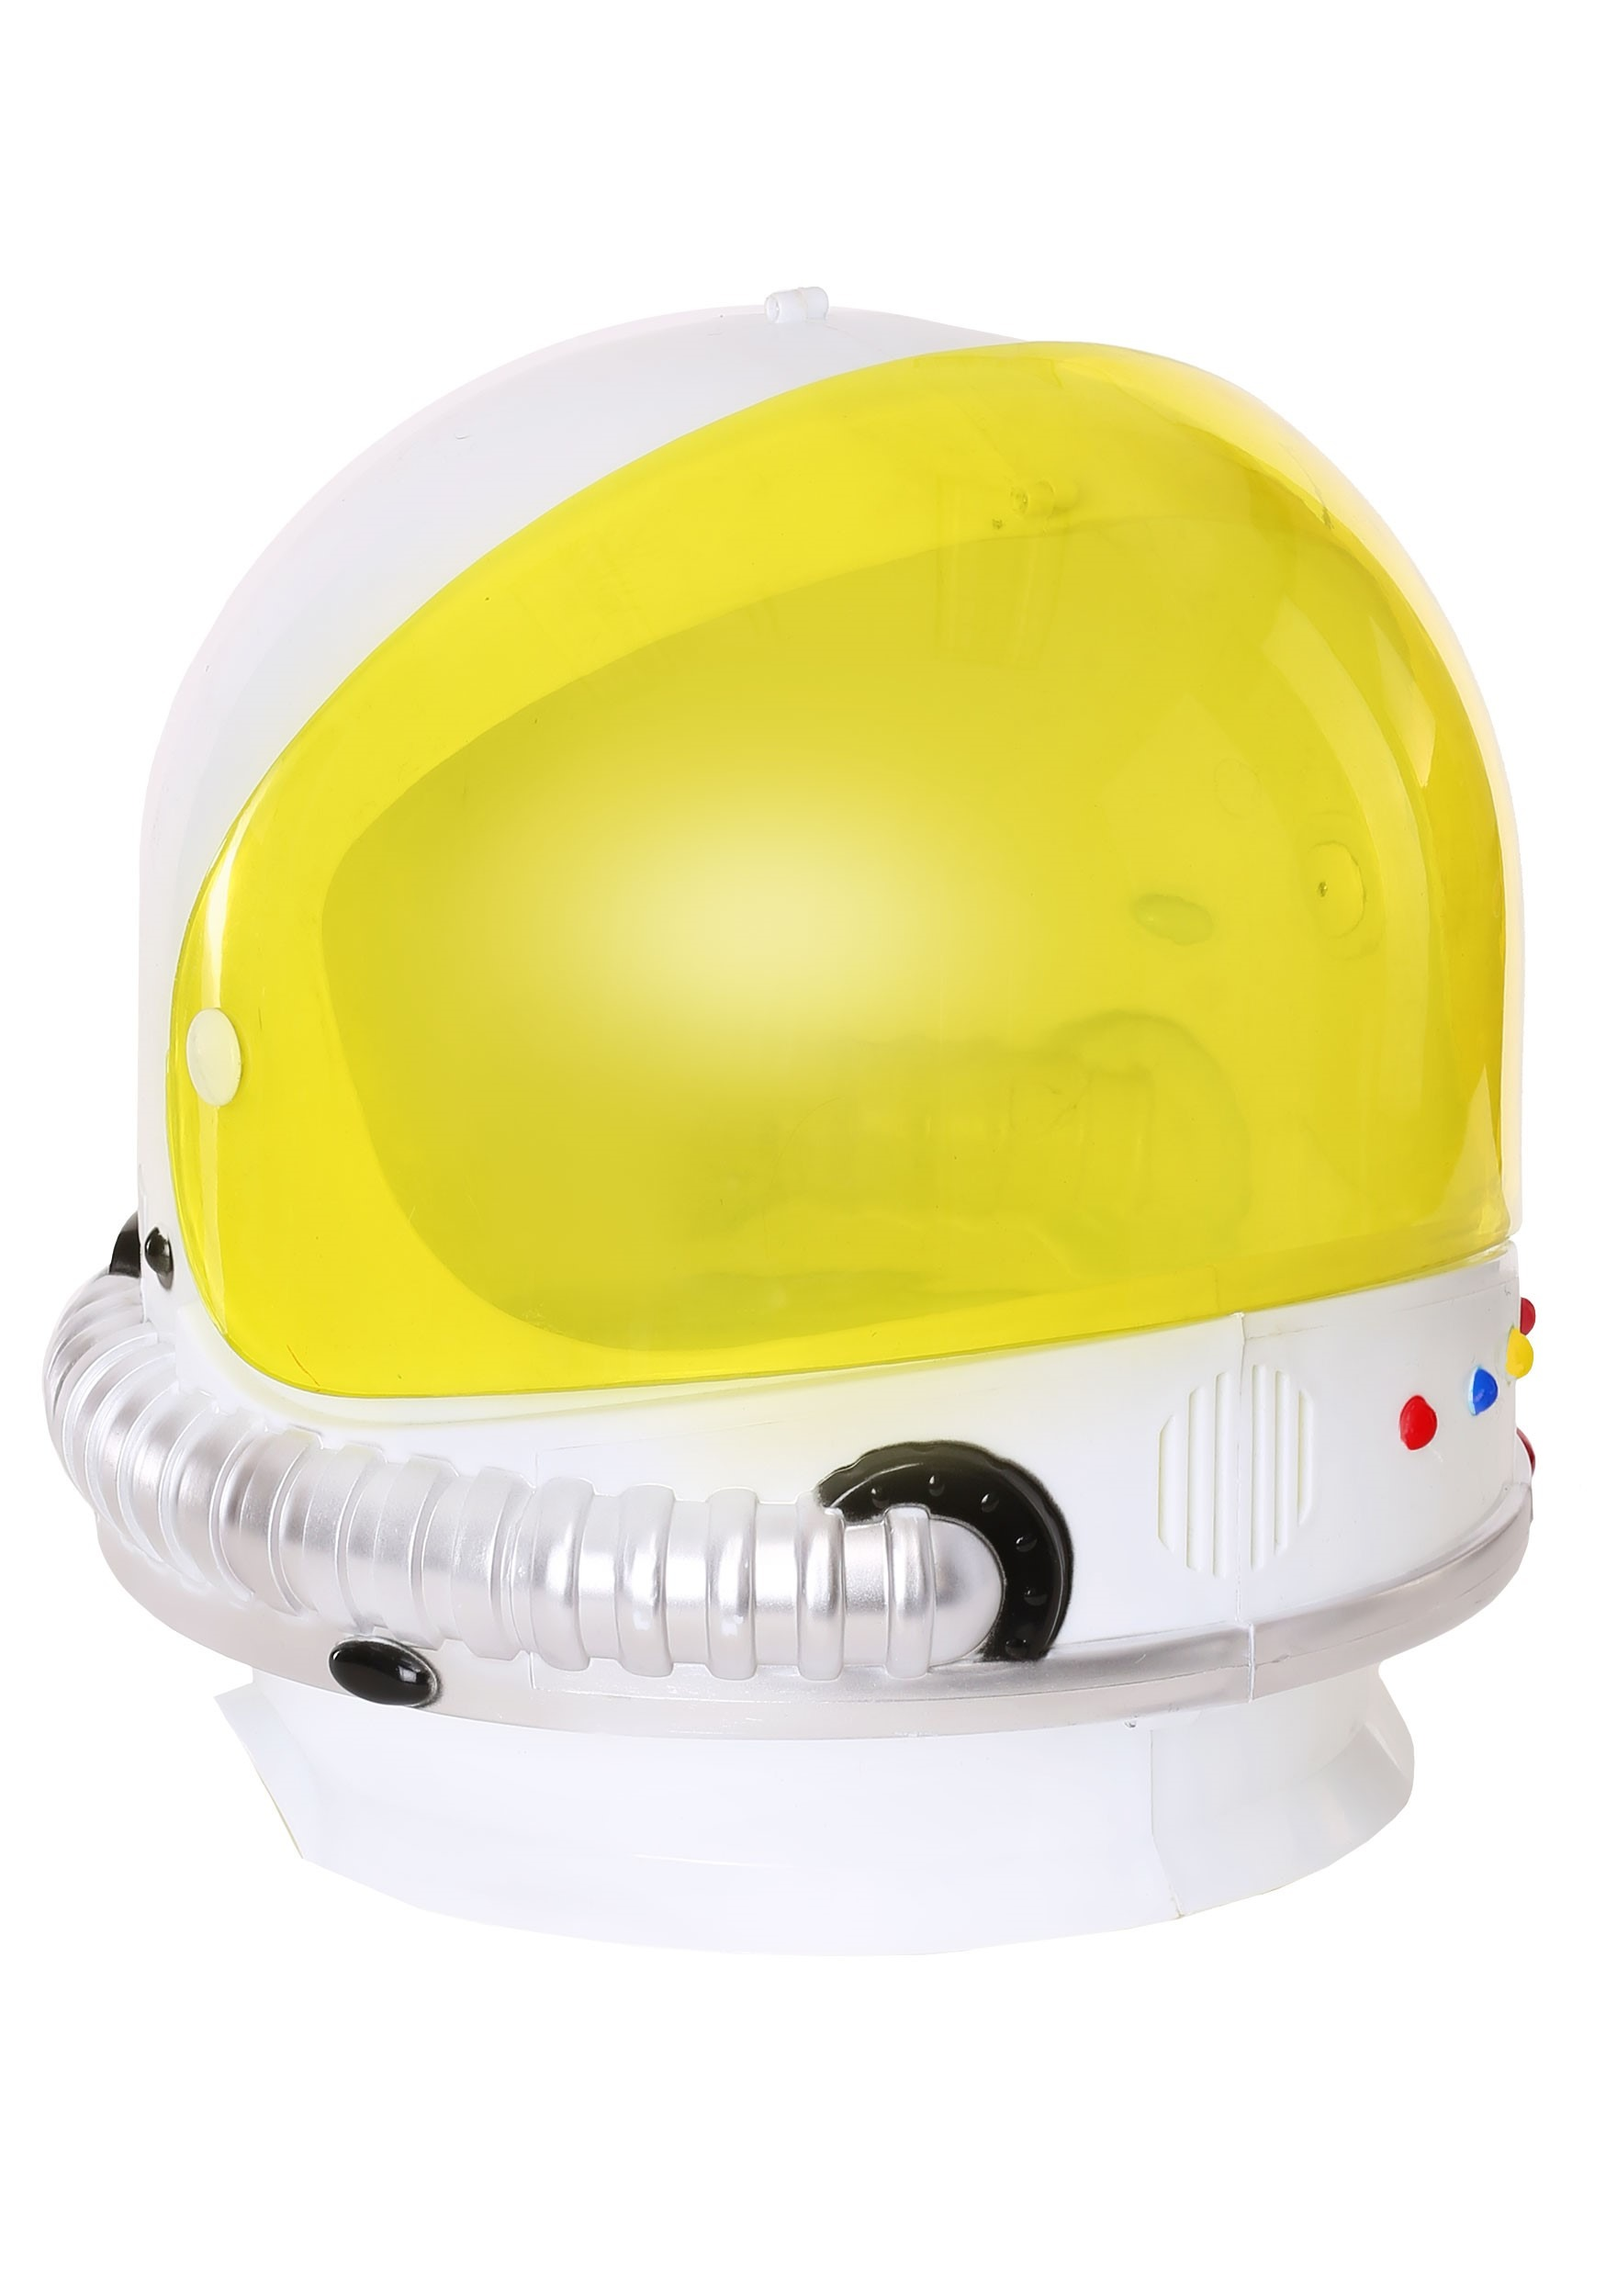 Astronaut Helmet for Adults